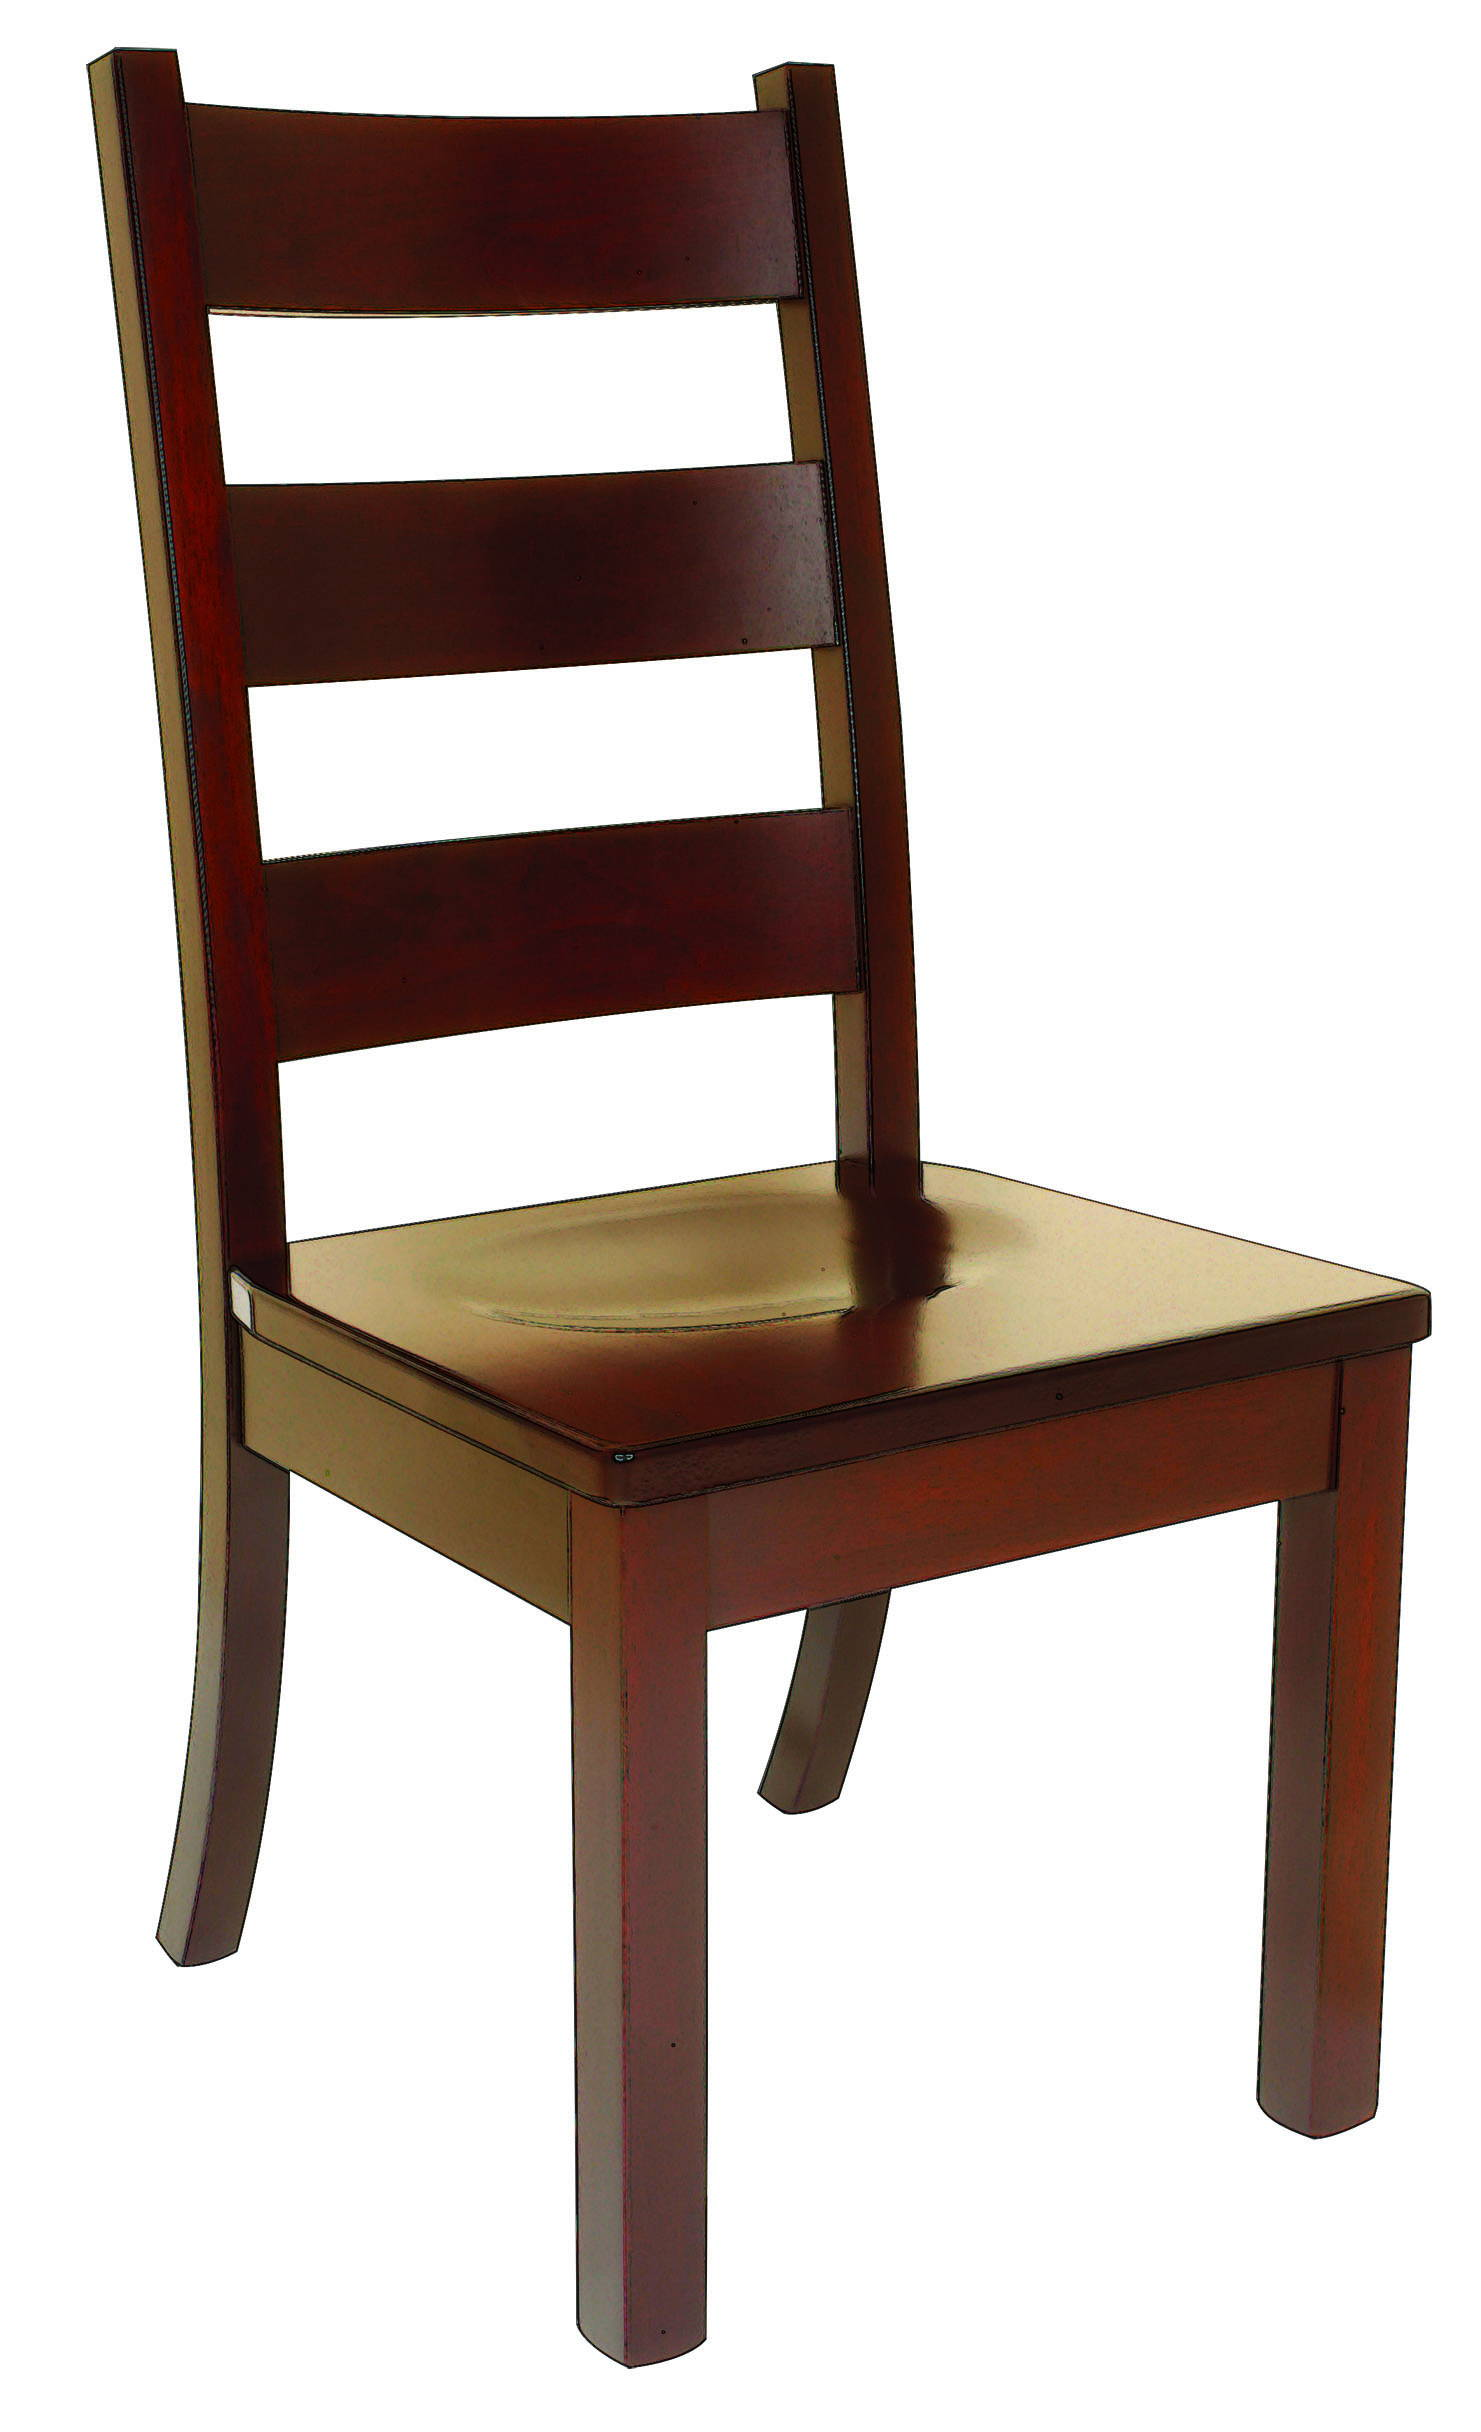 Western Hi-Back Solid Wood, Handcrafted Kitchen Chair or DIning Chair from Harvest Home Interiors Amish Furniture